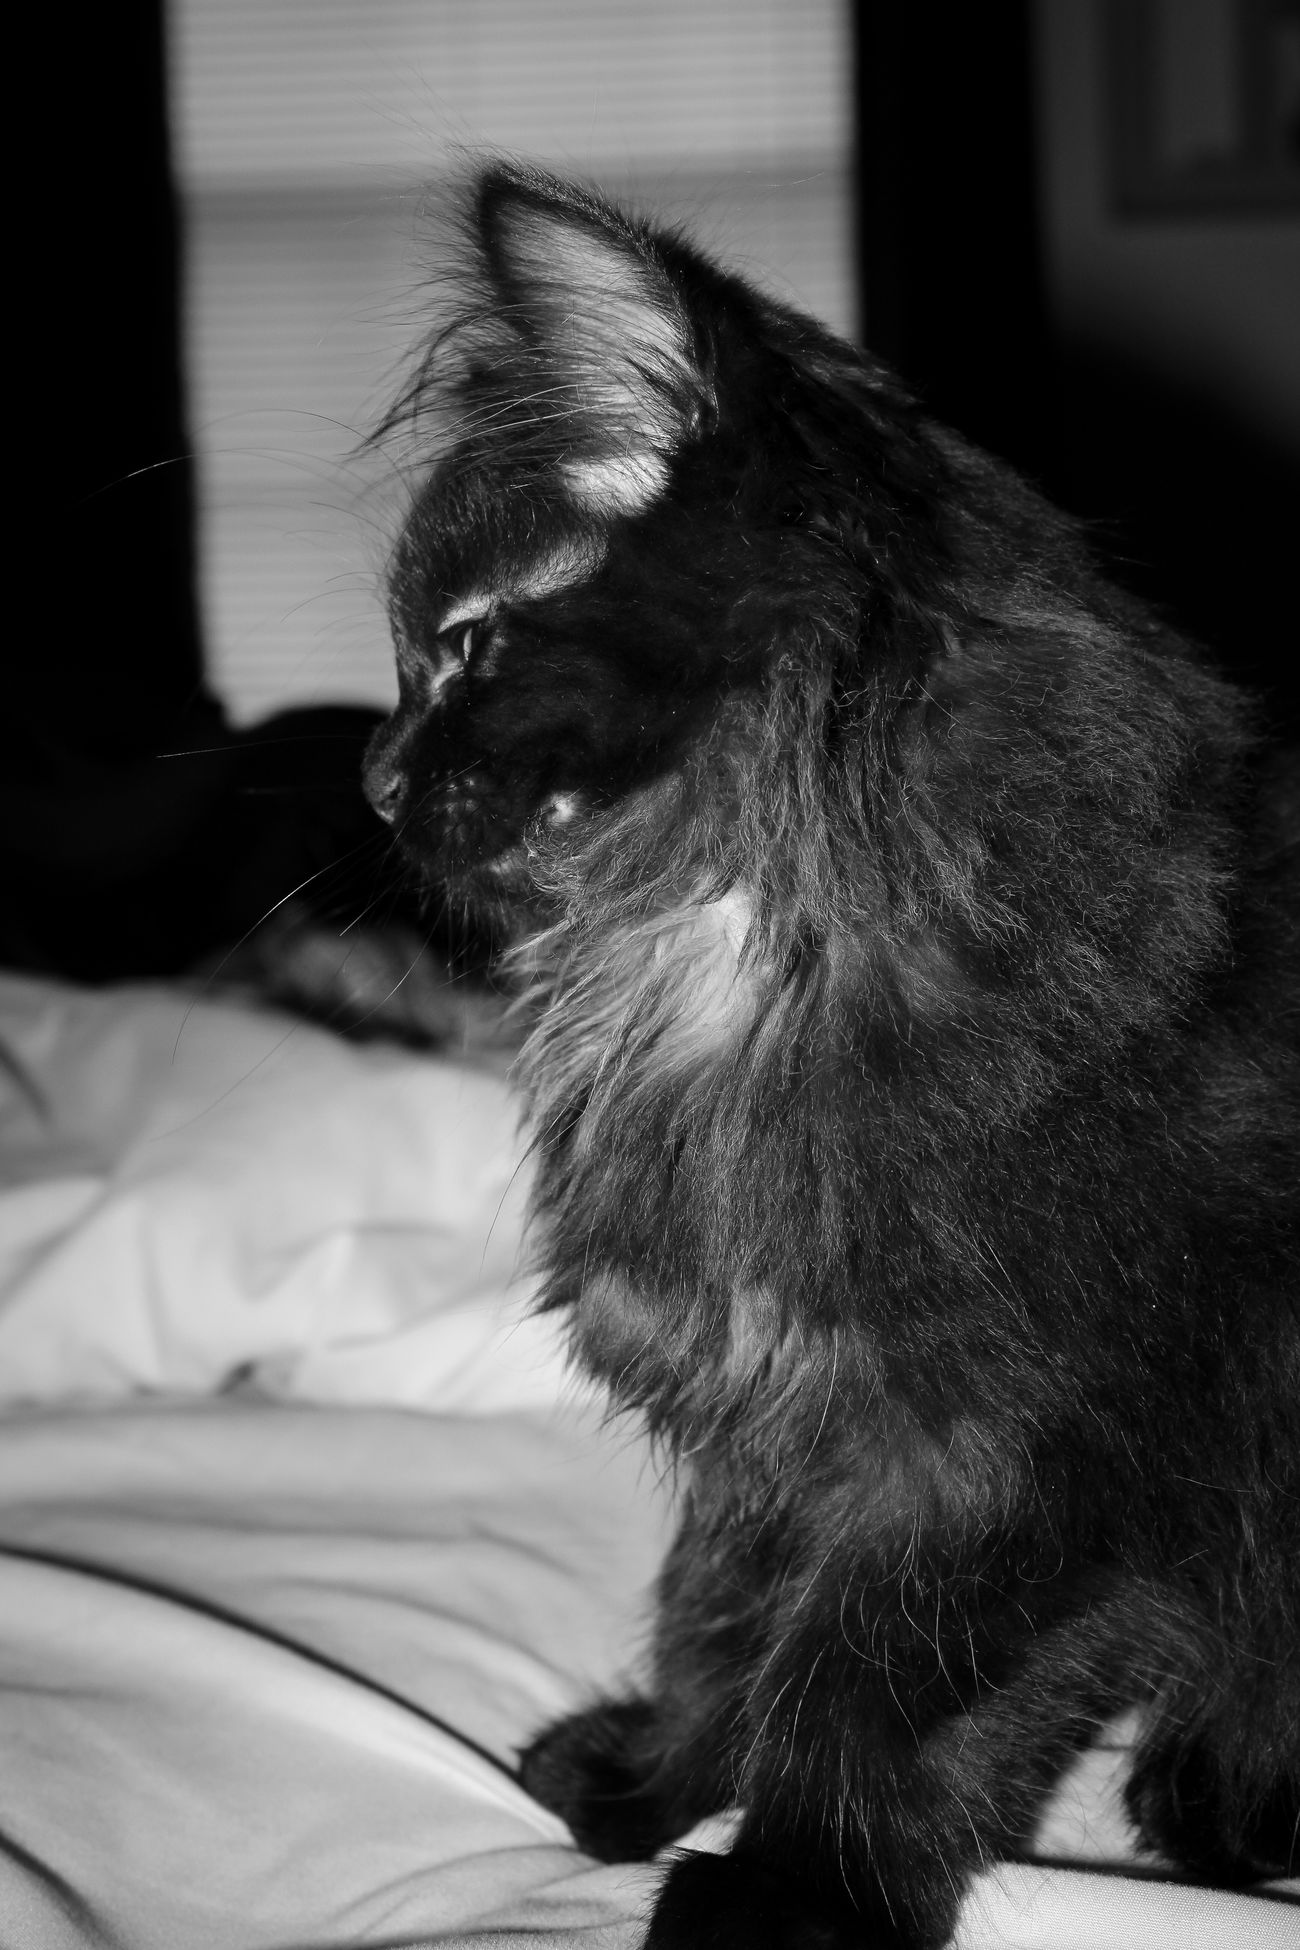 Black And White Animals Black And White Photography Black Cat Black Cat Photography Black Cat Portrait Black Cats Black Cats Are Beautiful Bnw Bnw_captures Bnw_collection Bnw_friday_eyeemchallenge Bnw_planet Close-up Pets